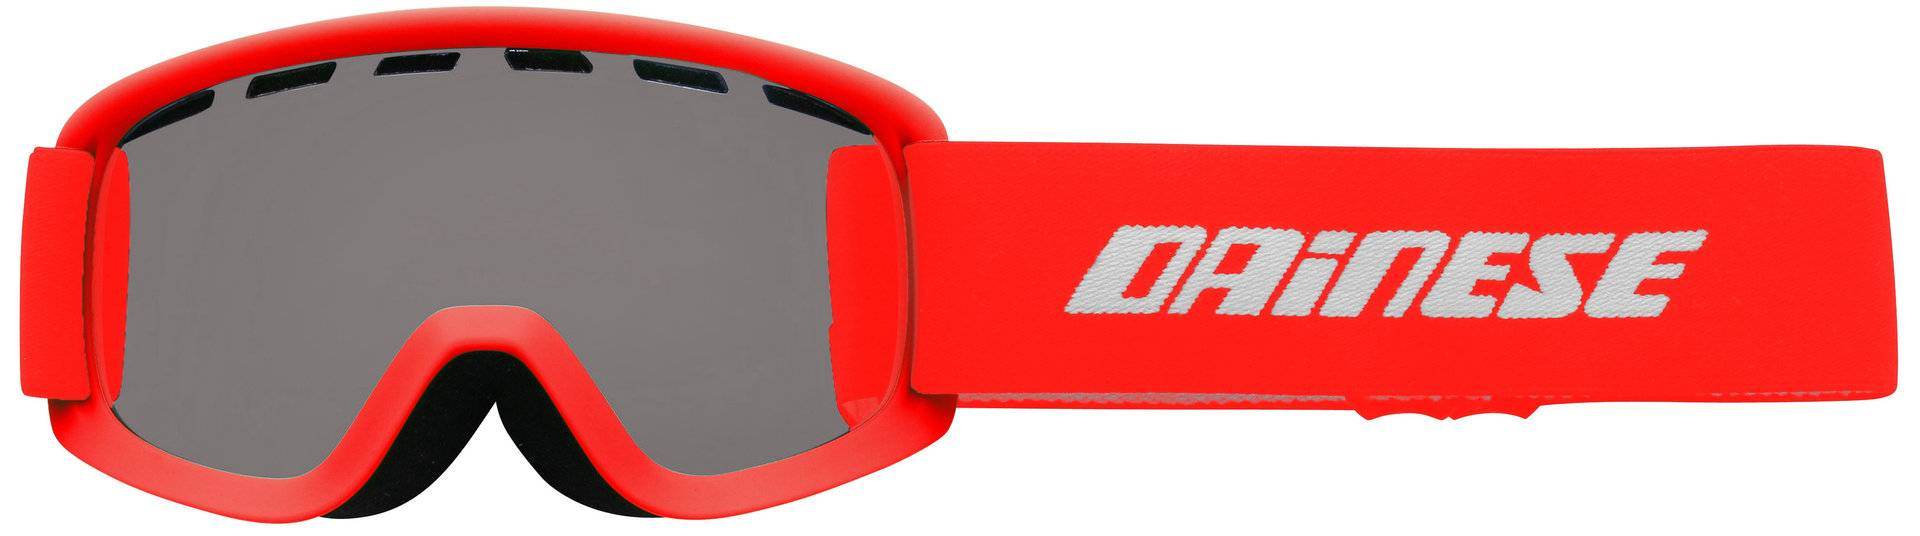 Dainese Opti JR Kids Ski Goggles Red One Size